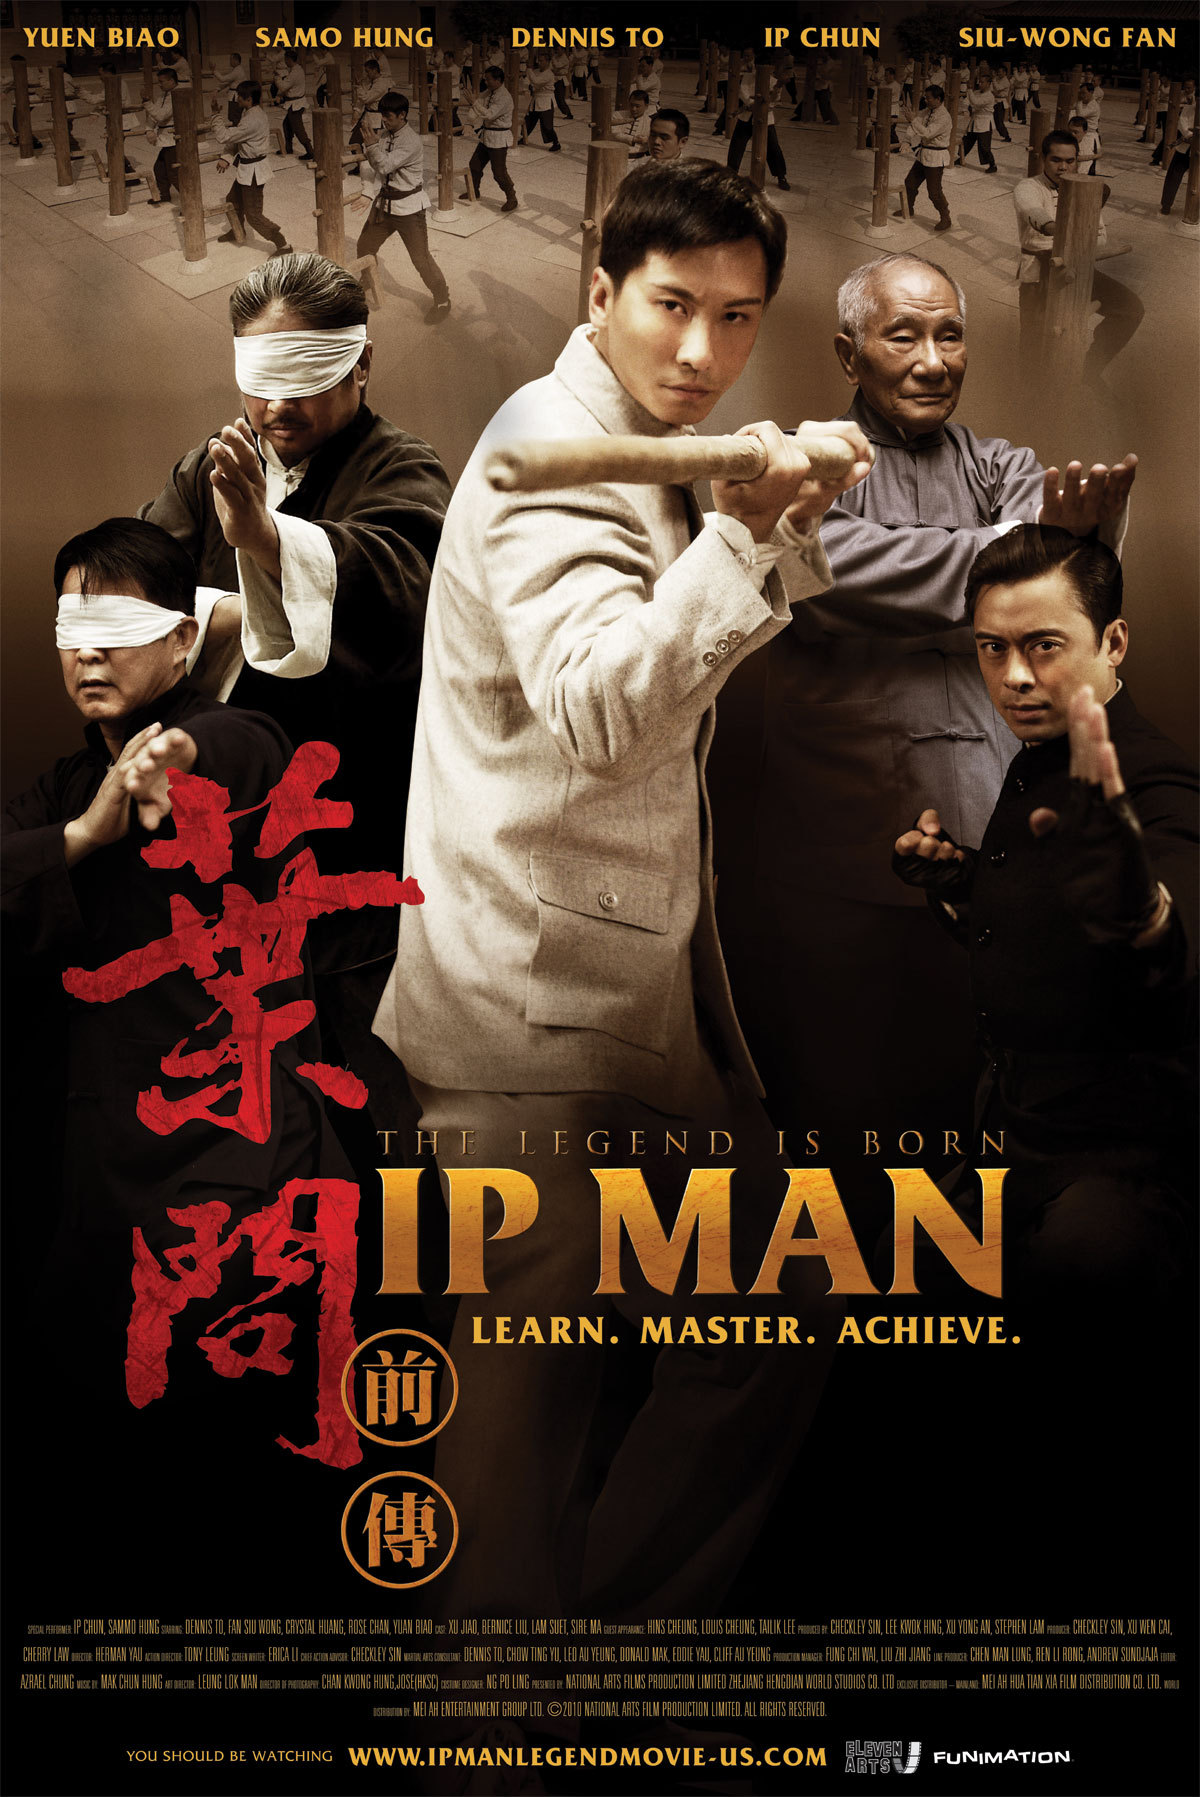 ip man 3 full movie online english sub